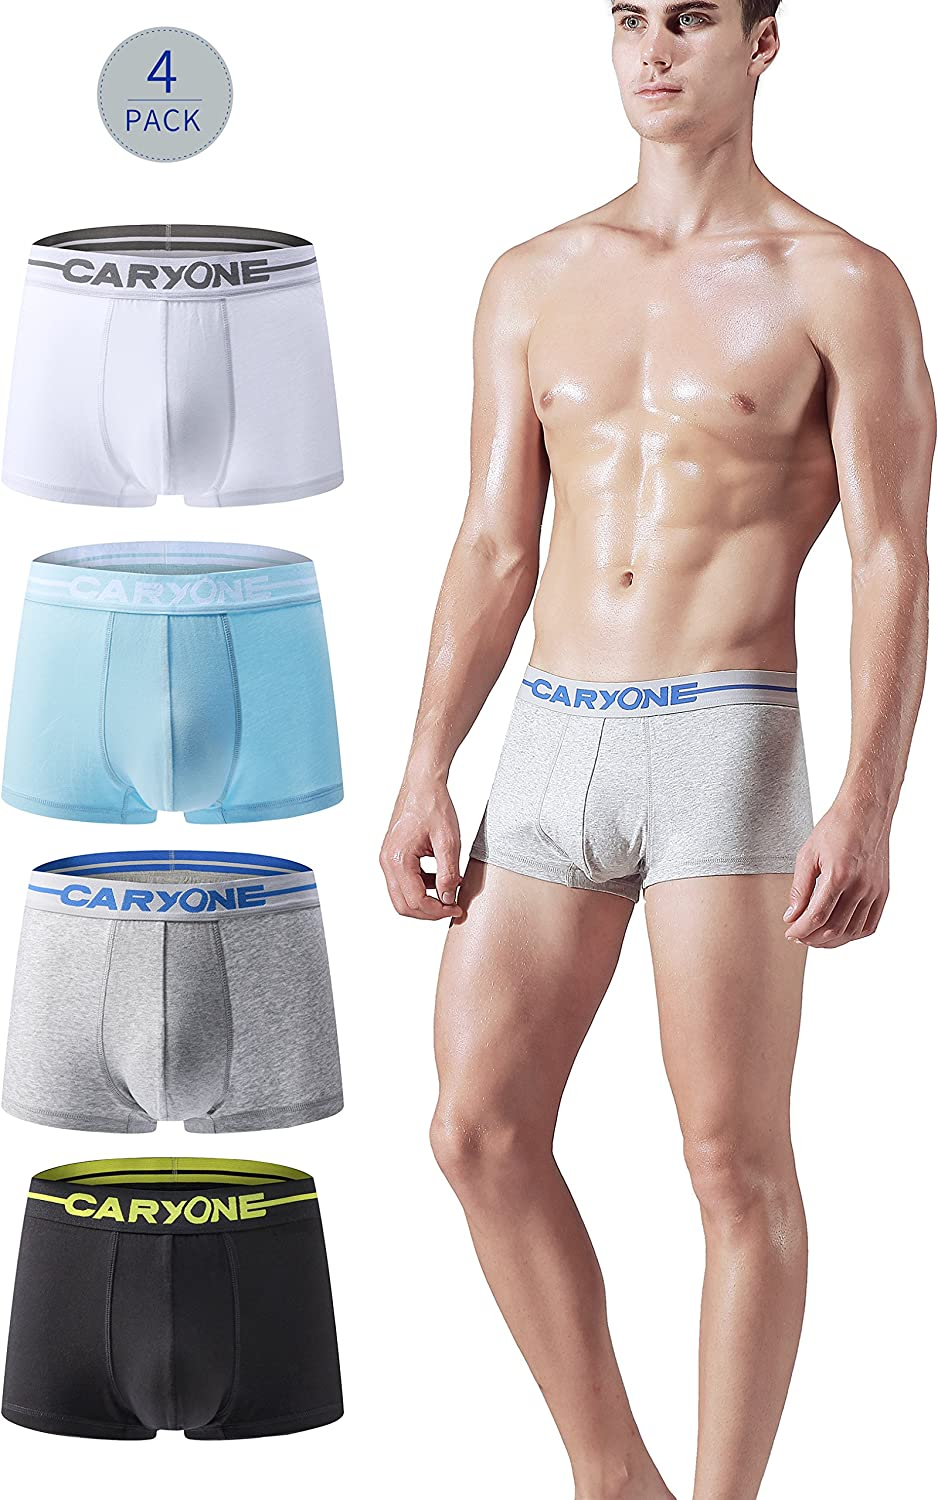 Antibacterial Pouch Workout Sports Active Underwear Boxer Briefs CARYONE Mens Quick Dry Stretch Cotton Boxers 4-Pack